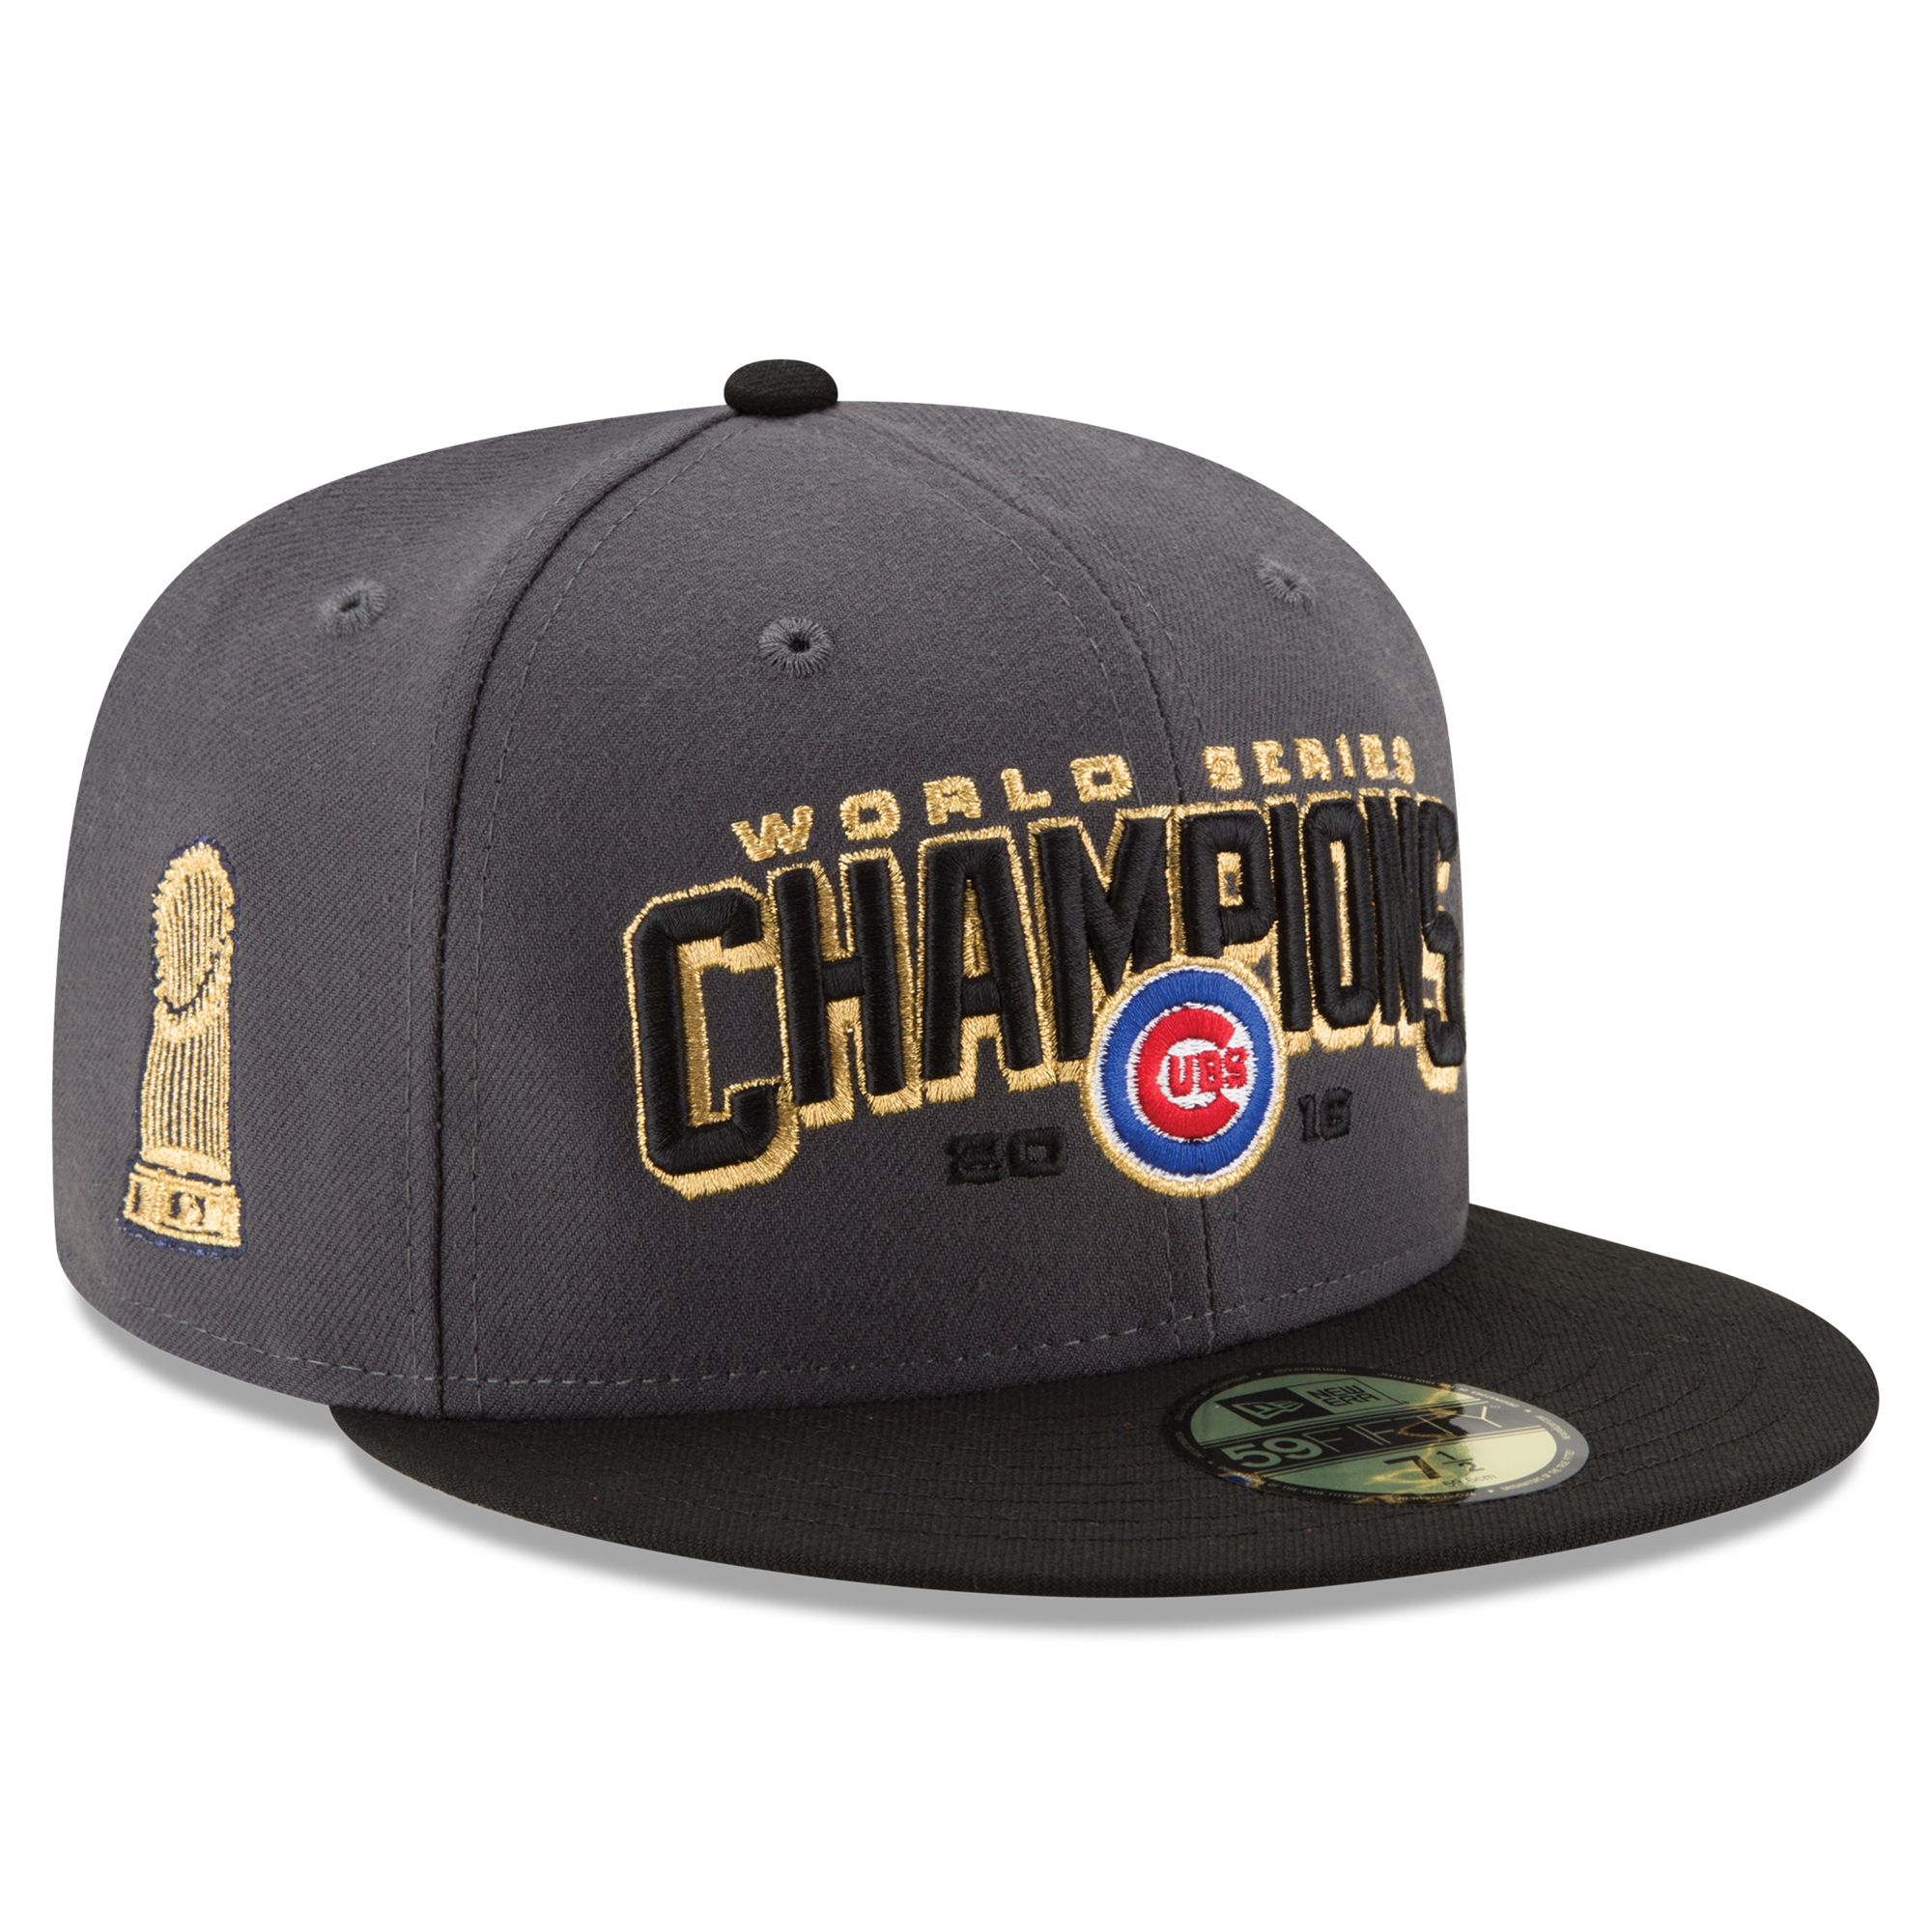 Men's New Era Gray/Black Chicago Cubs 2016 World Series Champions Two-Tone 59FIFTY Fitted Hat